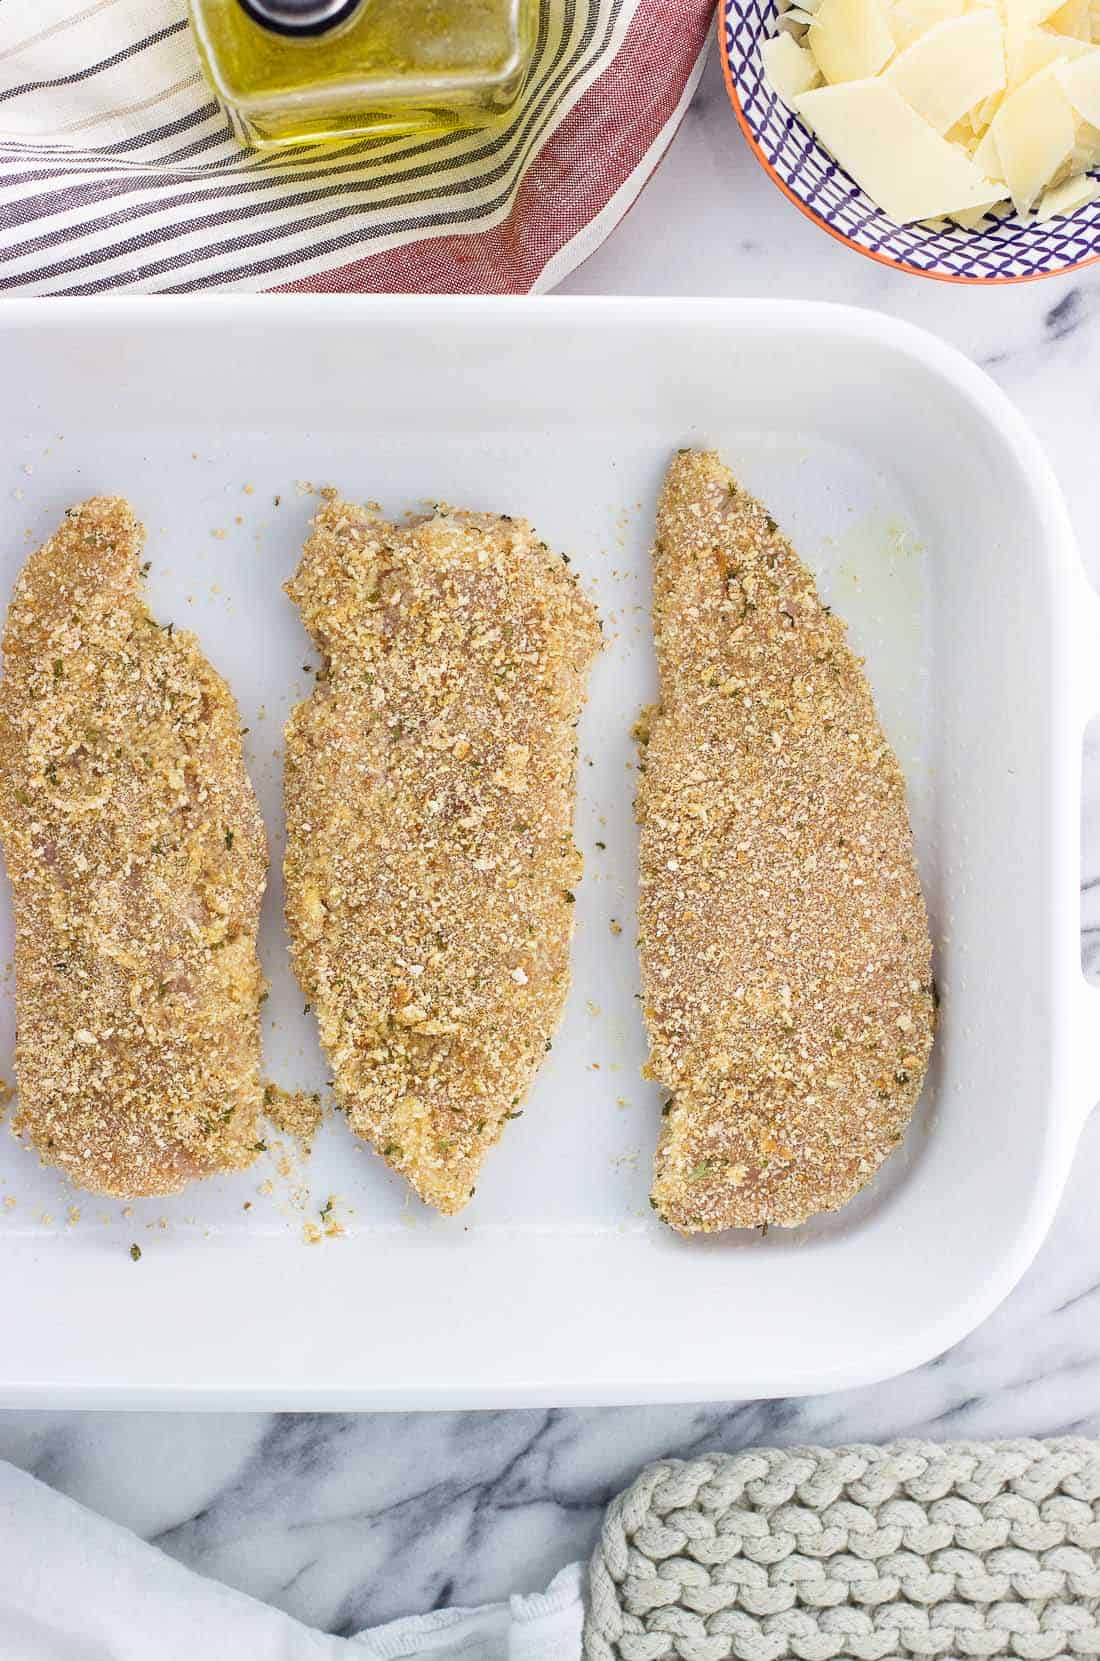 Chicken cutlets coated in breadcrumbs in a single layer in a large rectangular baking dish